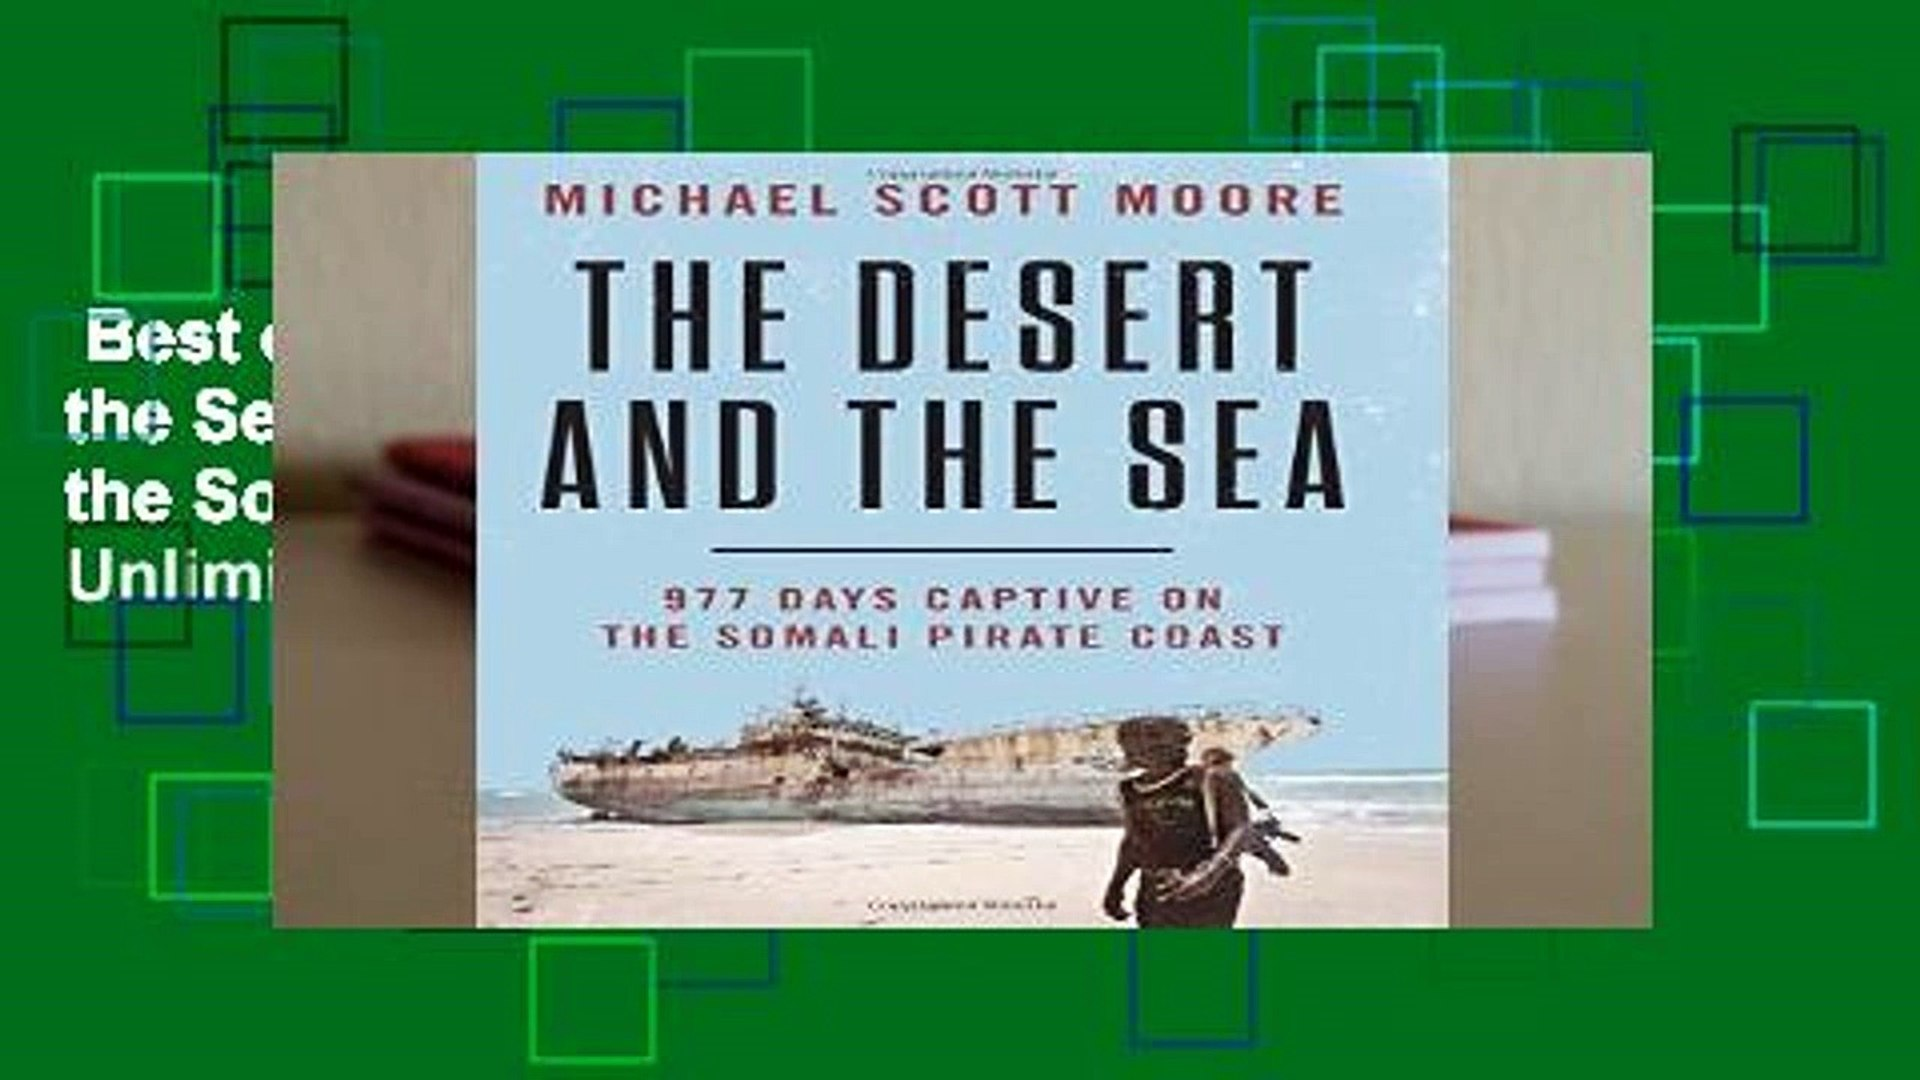 Best ebook  The Desert and the Sea: 977 Days Captive on the Somali Pirate Coast  Unlimited